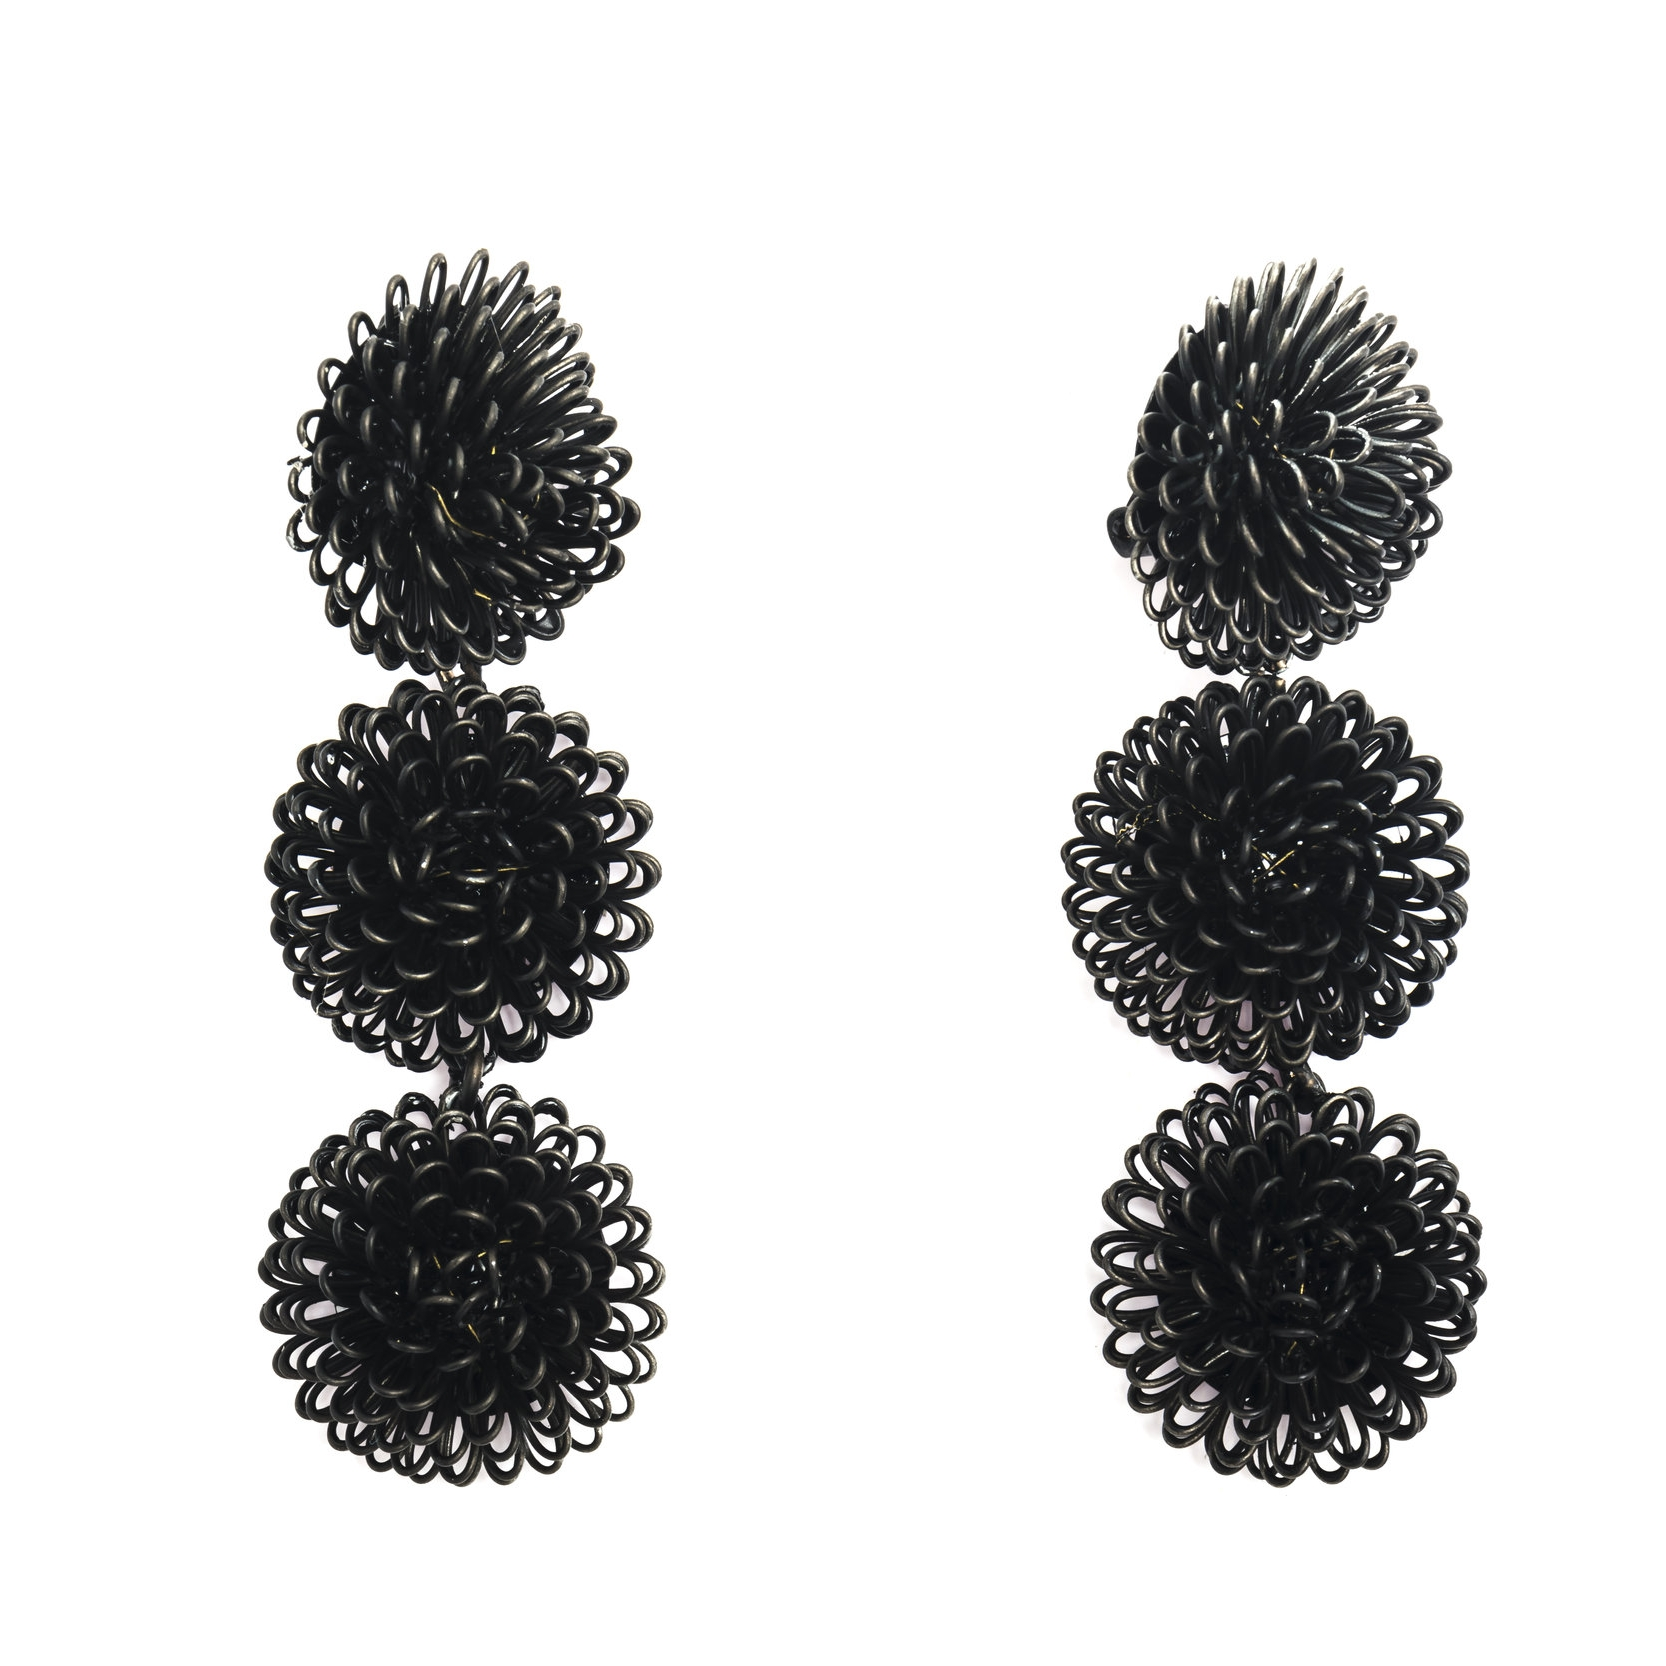 25 Black Pom Pon Earrings  F2017.jpg